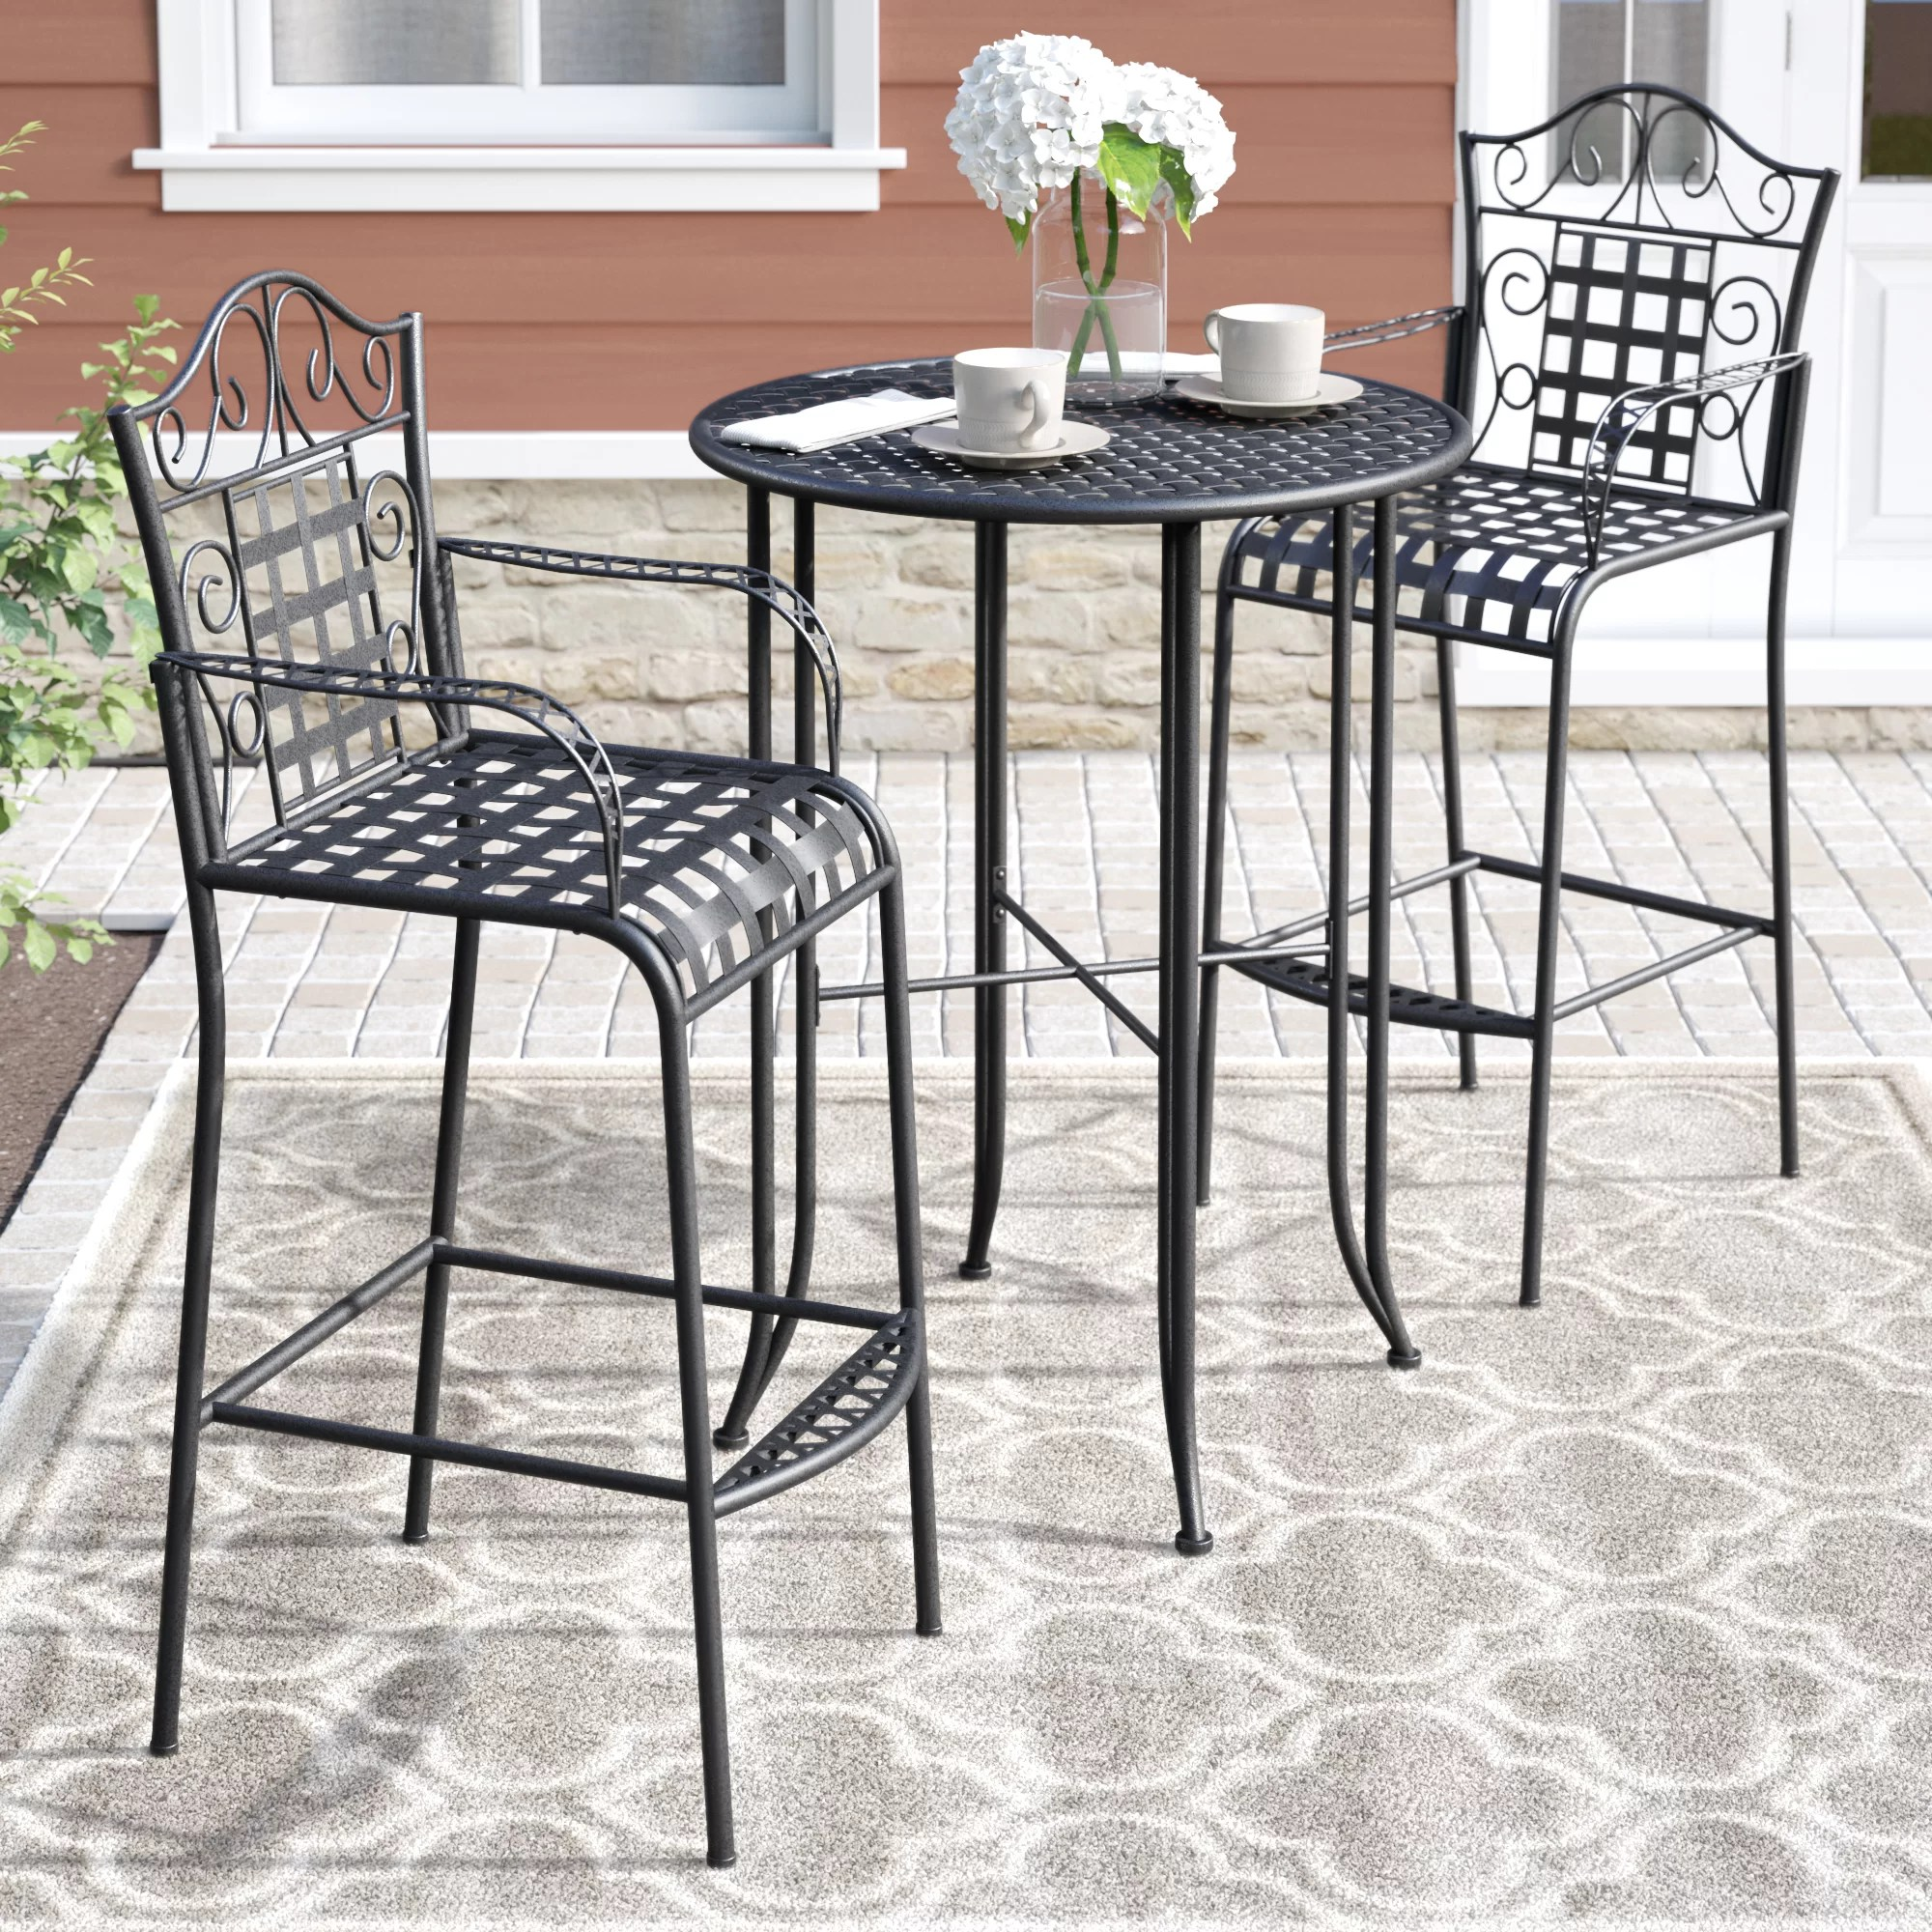 Bar Height Table And Chairs Nocona 3 Piece Bar Height Bistro Patio Set